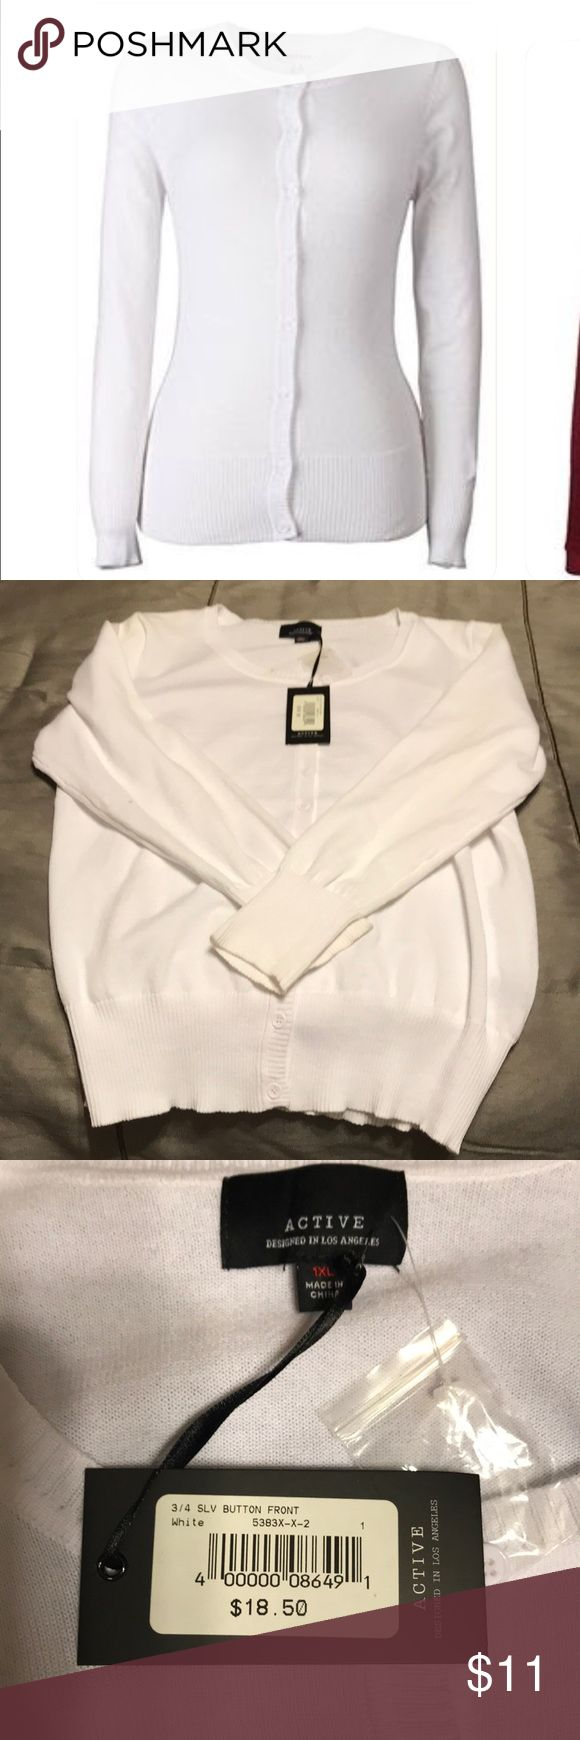 "Women's 3/4 Sleeve Button Front Cardigan/Sweater BNWT Active Designed In Los Angeles Sweater/Cardigan. Size 1X . FOUR Colors available. White, Baby Mint, Coral, and a ""Wheat/Oatmeal"" Color. All BNWT or BNWT. Never worn.60% Cotton, 40% Polyester. **White Sweater has a small spot on it that I just noticed. Could have come from being in my closet too long or I could have unknowingly purchased it like that. Please reference photo* Active Designed in Los Angeles Sweaters Cardigans"